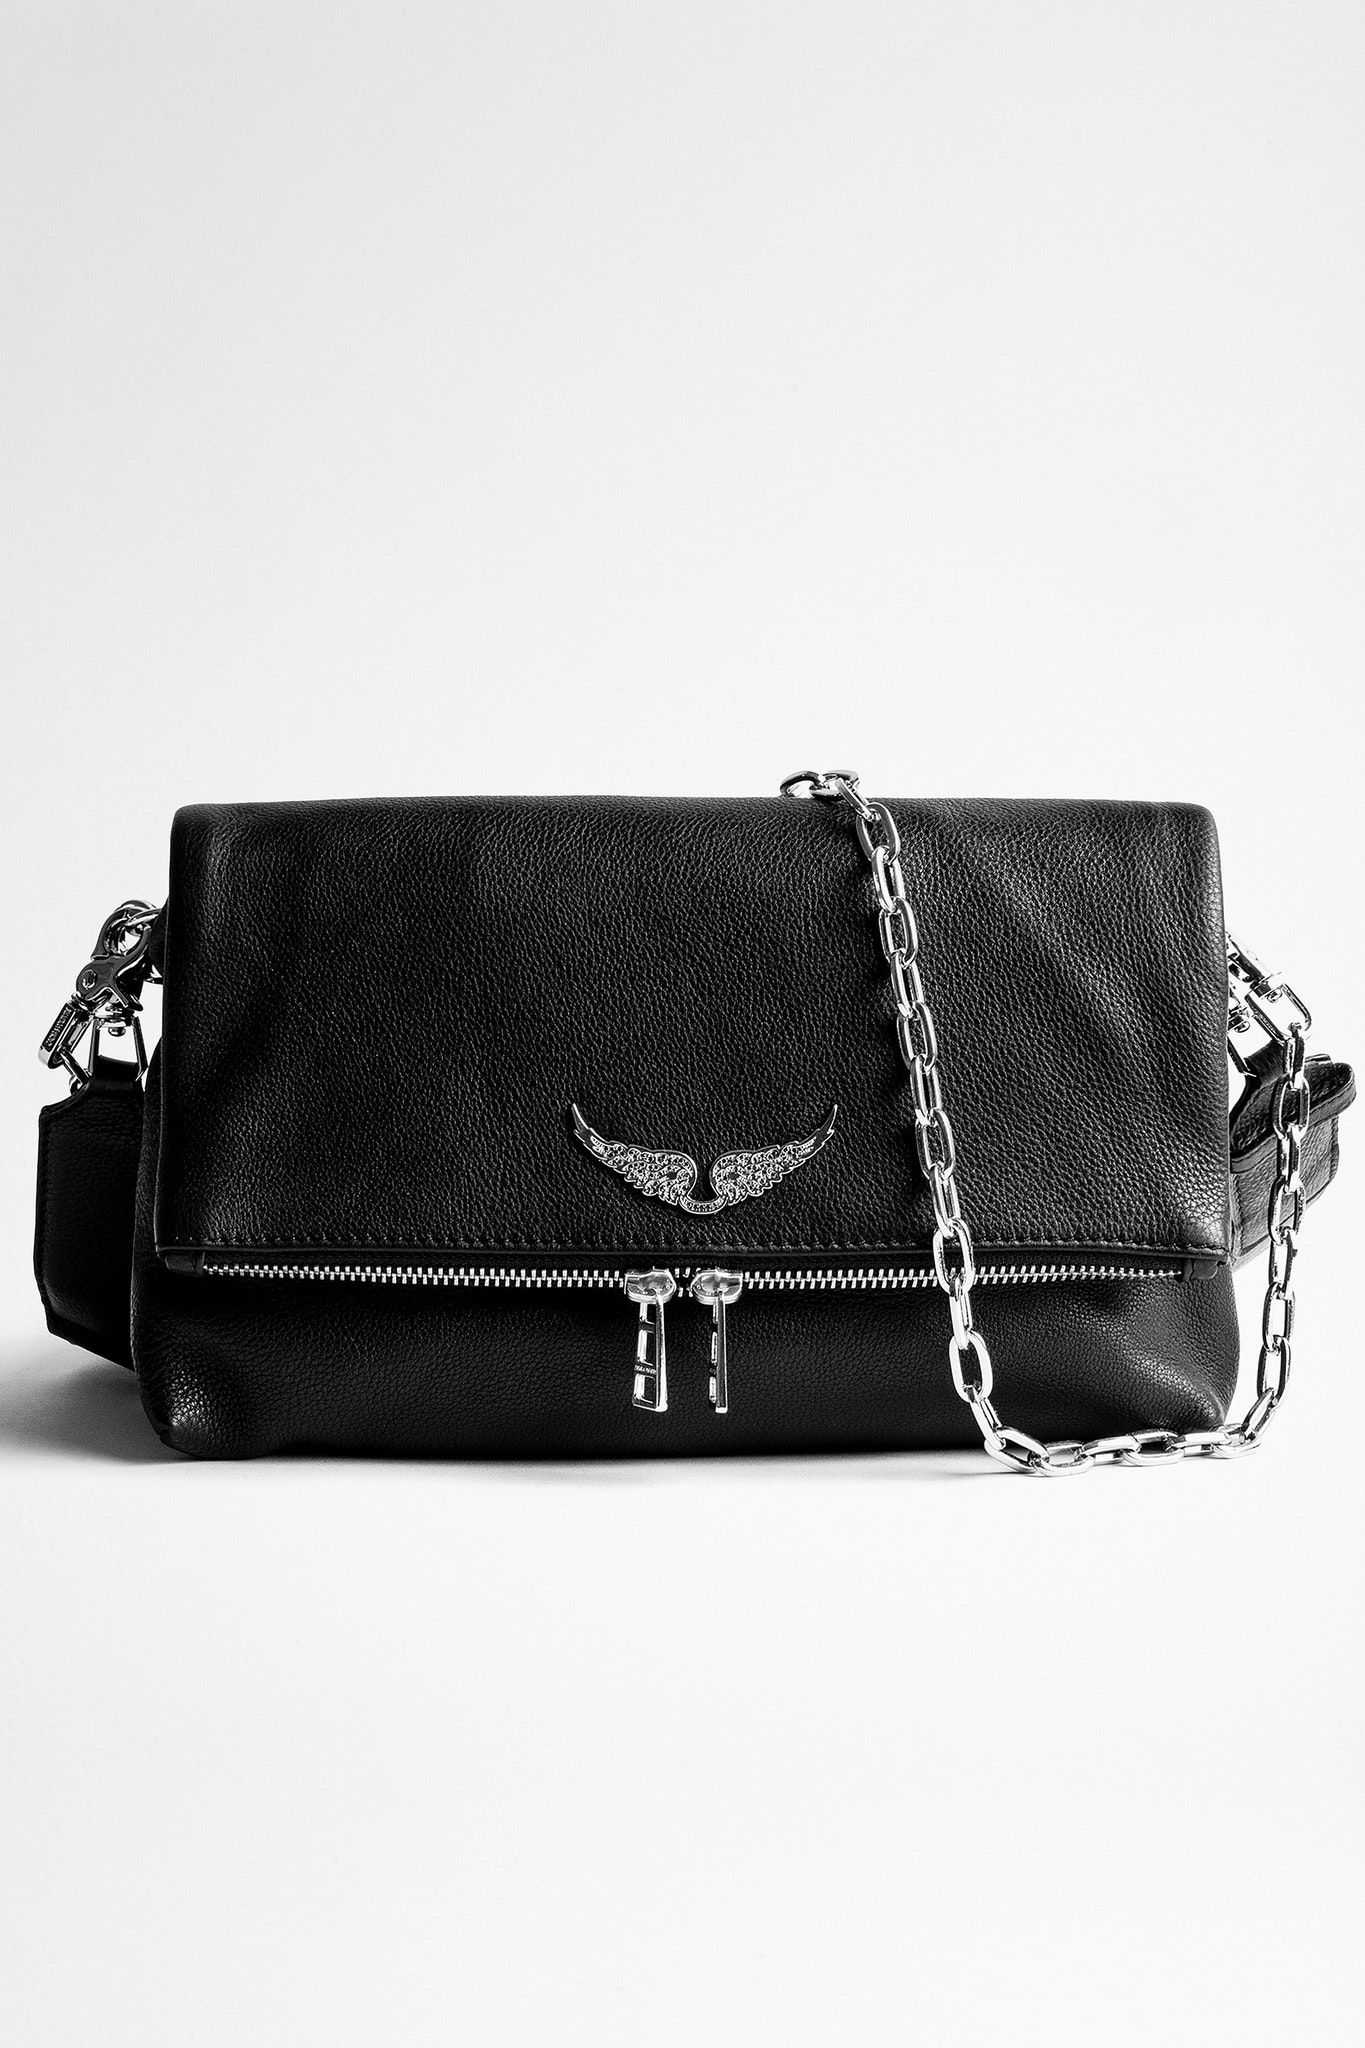 Rocky Bag Zadig And Voltaire Bags Black Leather Bags